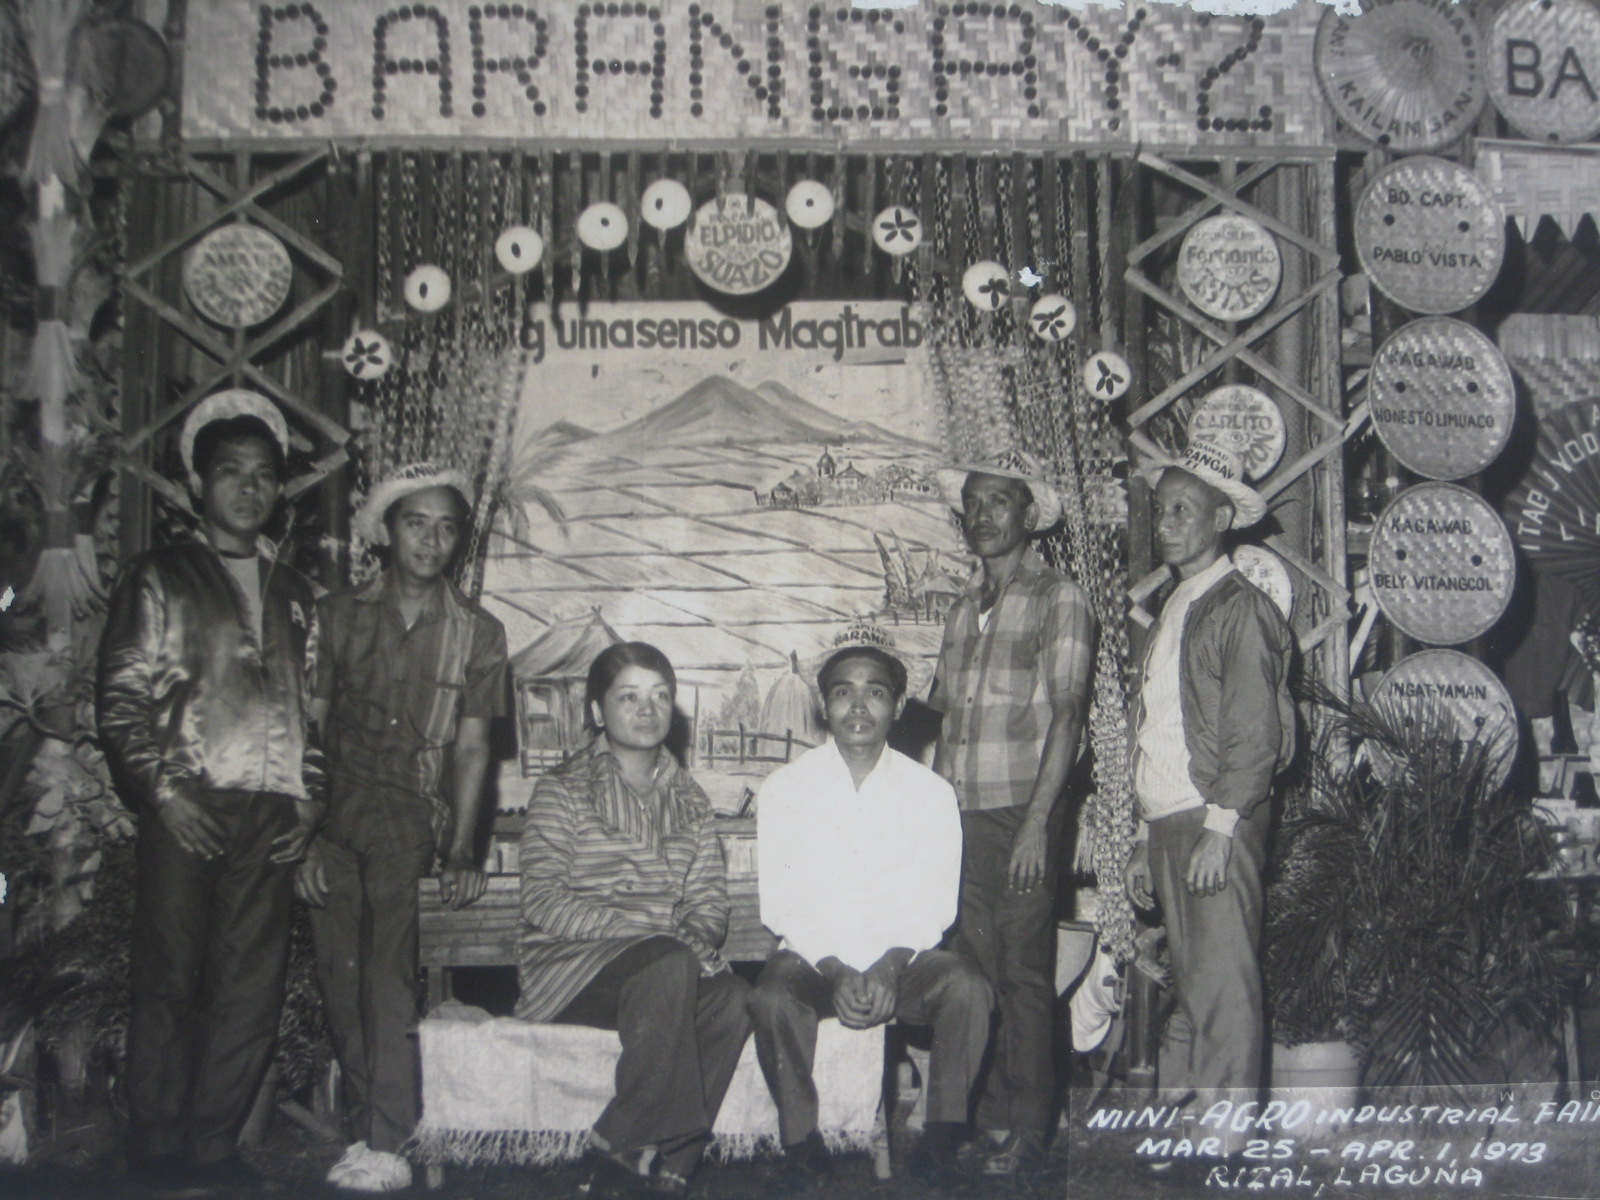 the history of barangay Barangay julio ounao before was a part of the vast jurisdiction of barangay poblacion under barangay captain eleuterio pongcol later during that time, the administrators encounter difficulties in handling the barangay government due to the subsistence of massive growth of population as well as with the complex juridical administration for this reason, the barangay council.